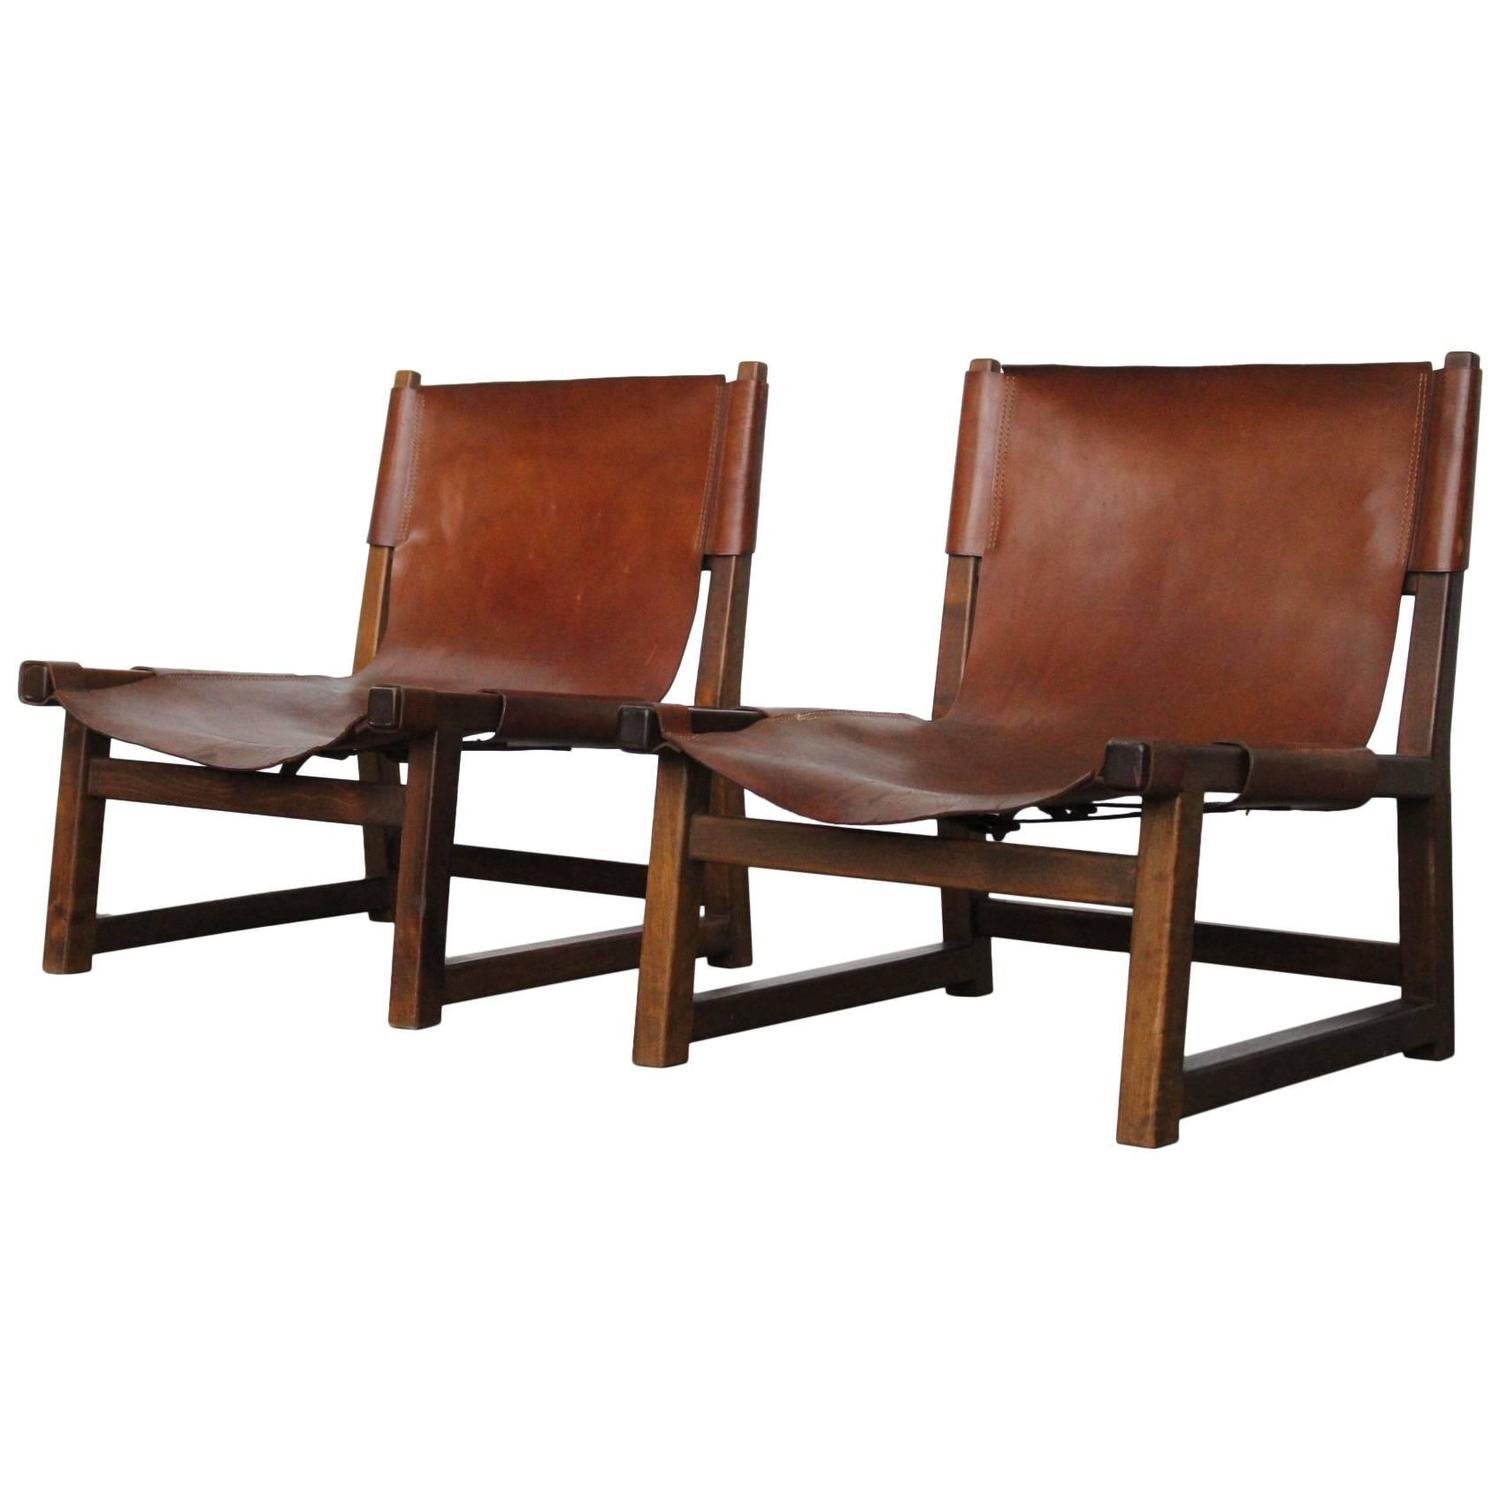 Pair of Beautiful Tanned Leather Swedish Oak Hunting Chairs at 1stdibs